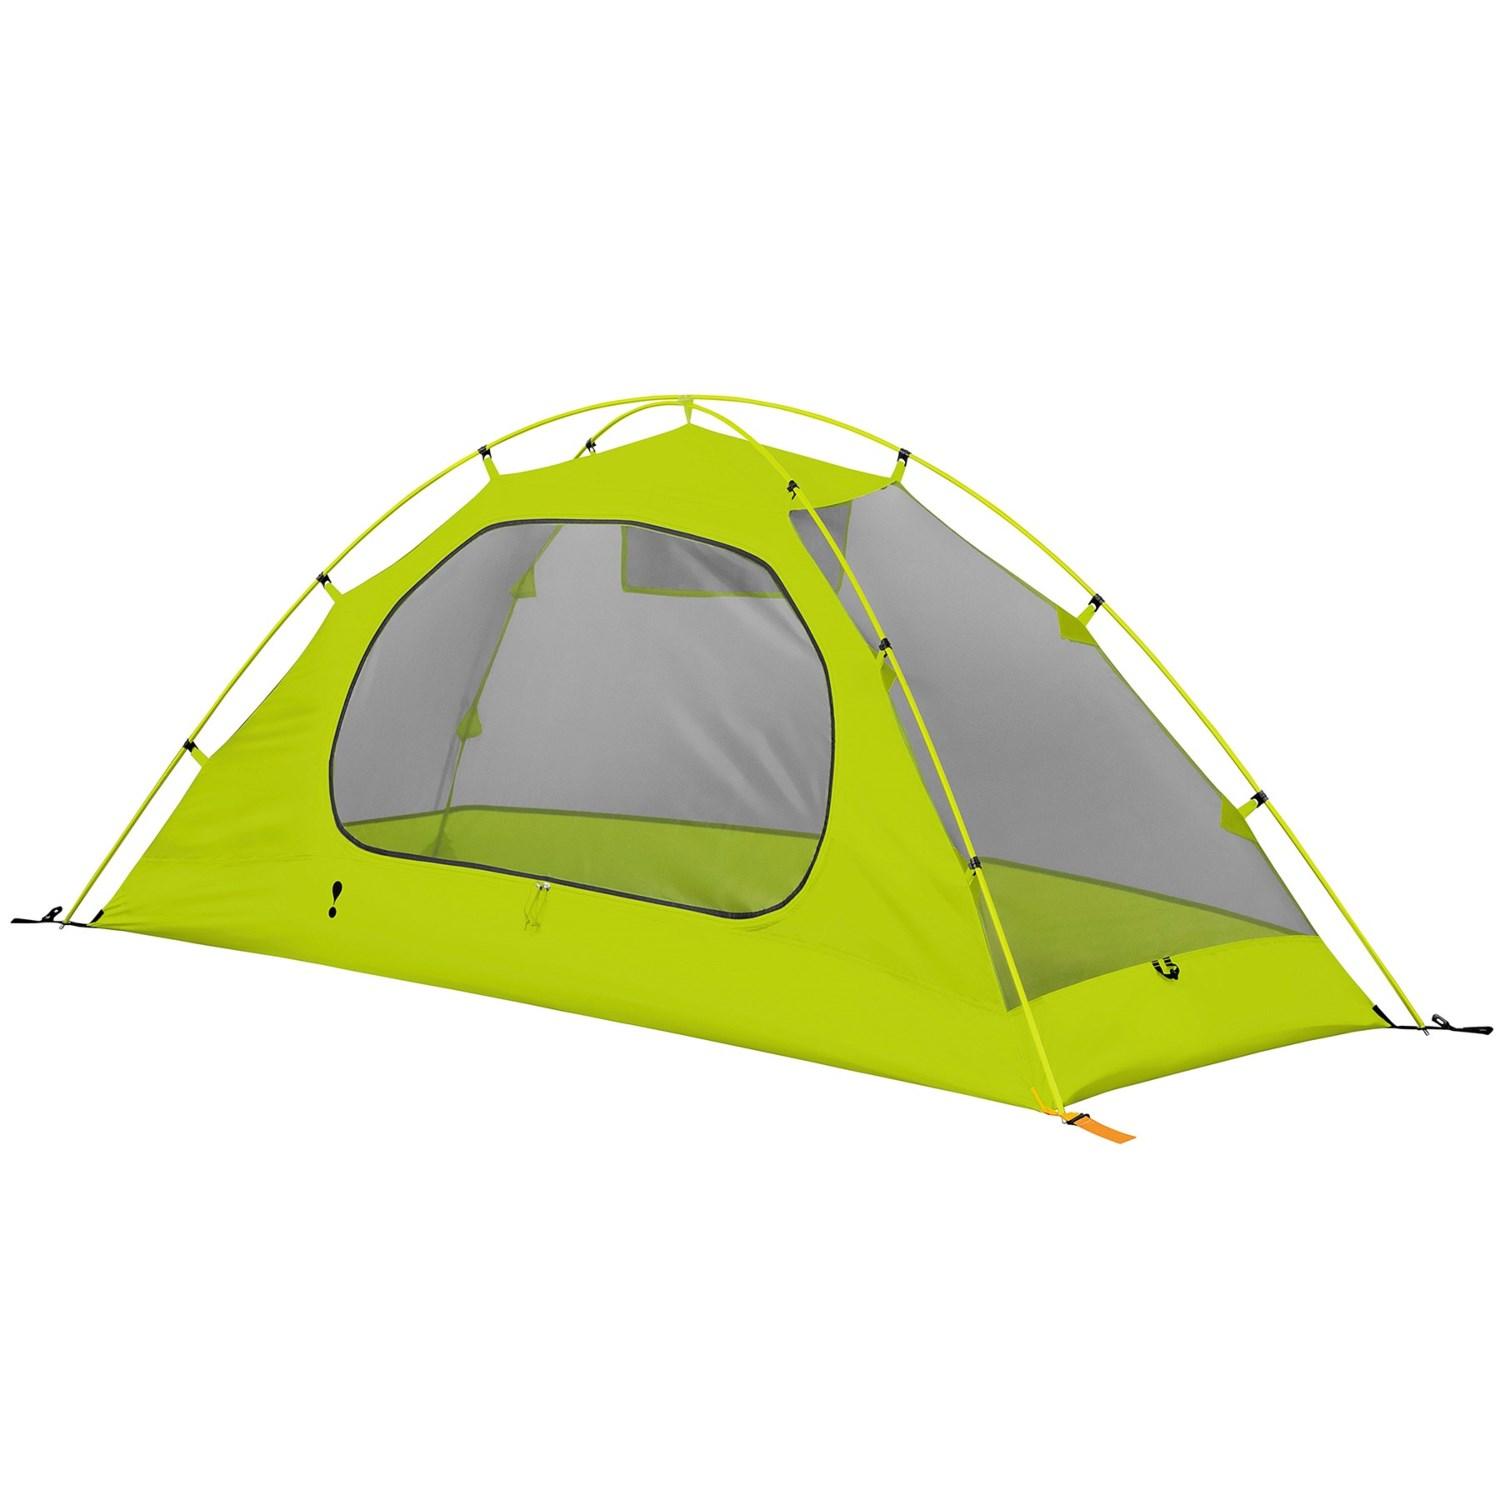 Eureka Midori 6 Tent - 6-Person 3-Season in See Photo ...  sc 1 st  Sierra Trading Post & Eureka Midori 6 Tent - 6-Person 3-Season - Save 39%